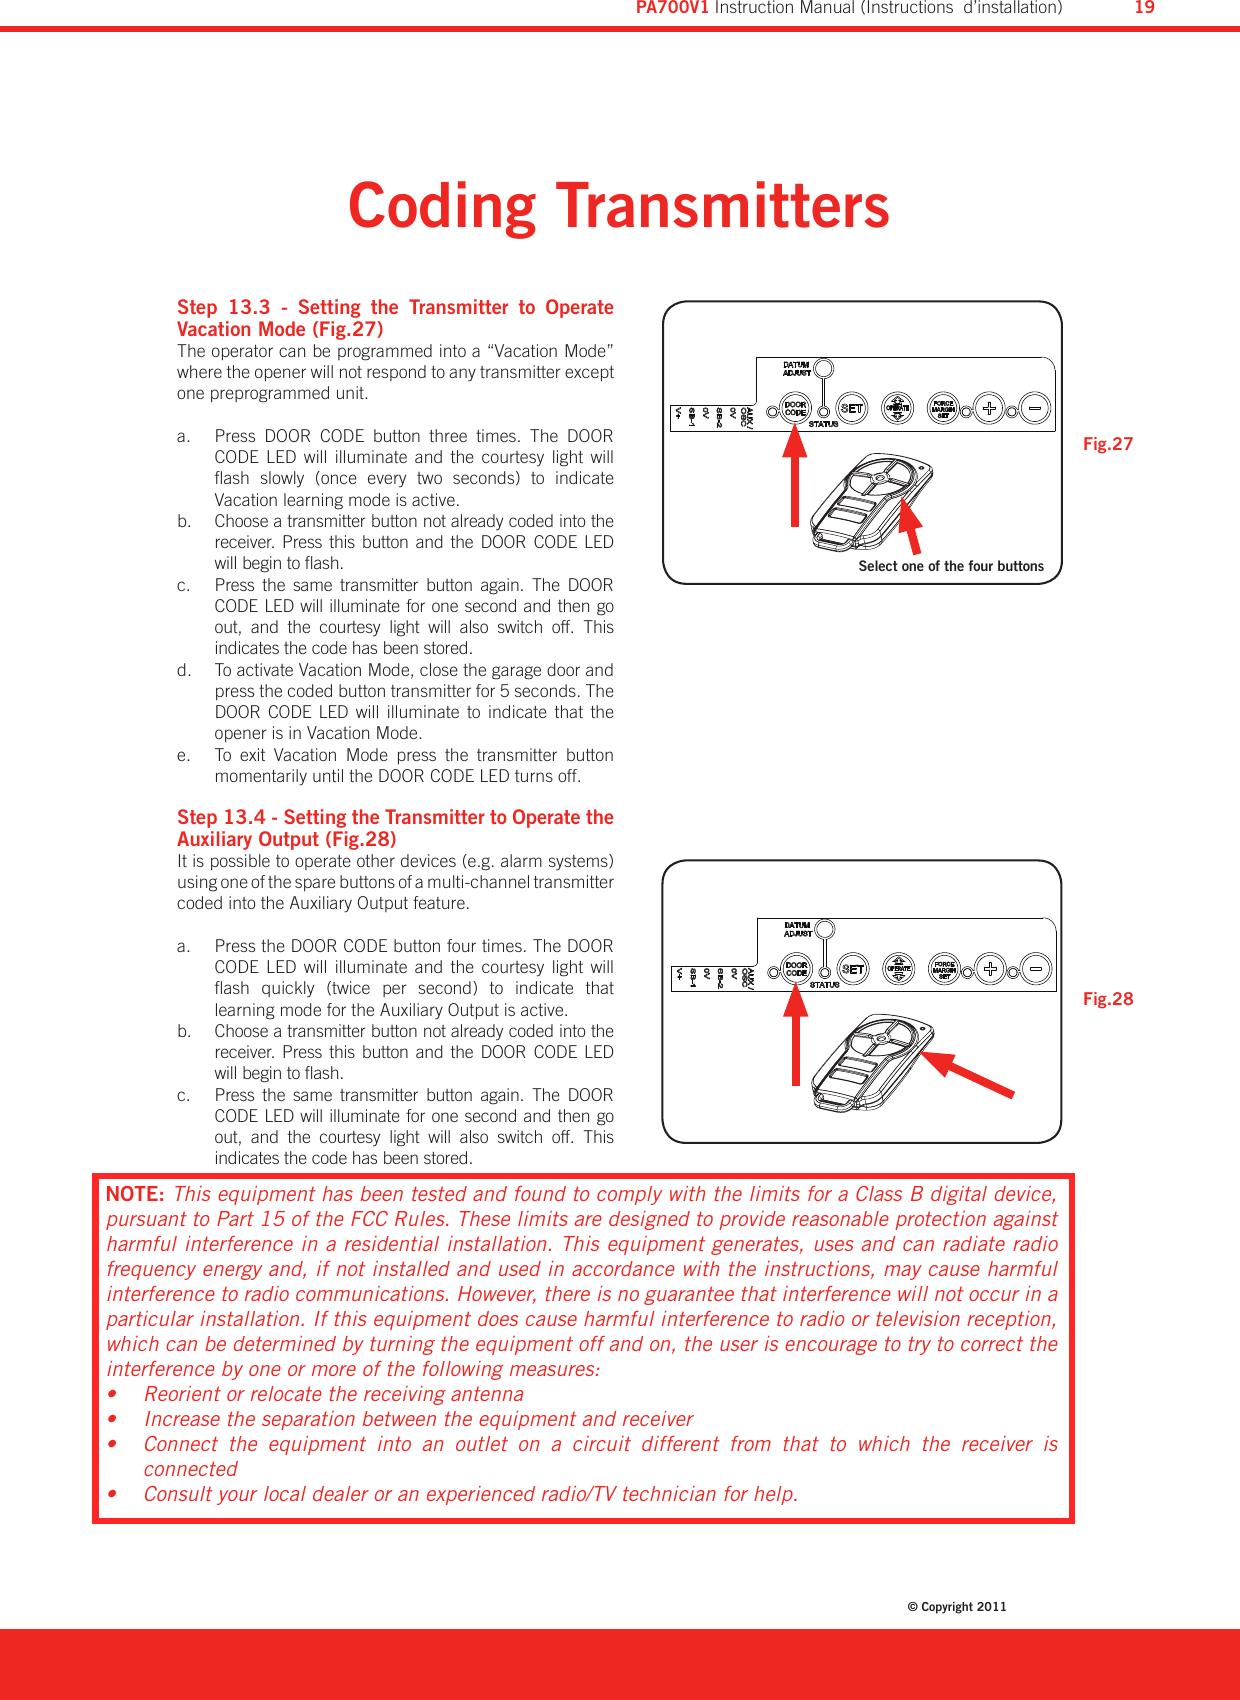 md30614 aus-a user manual